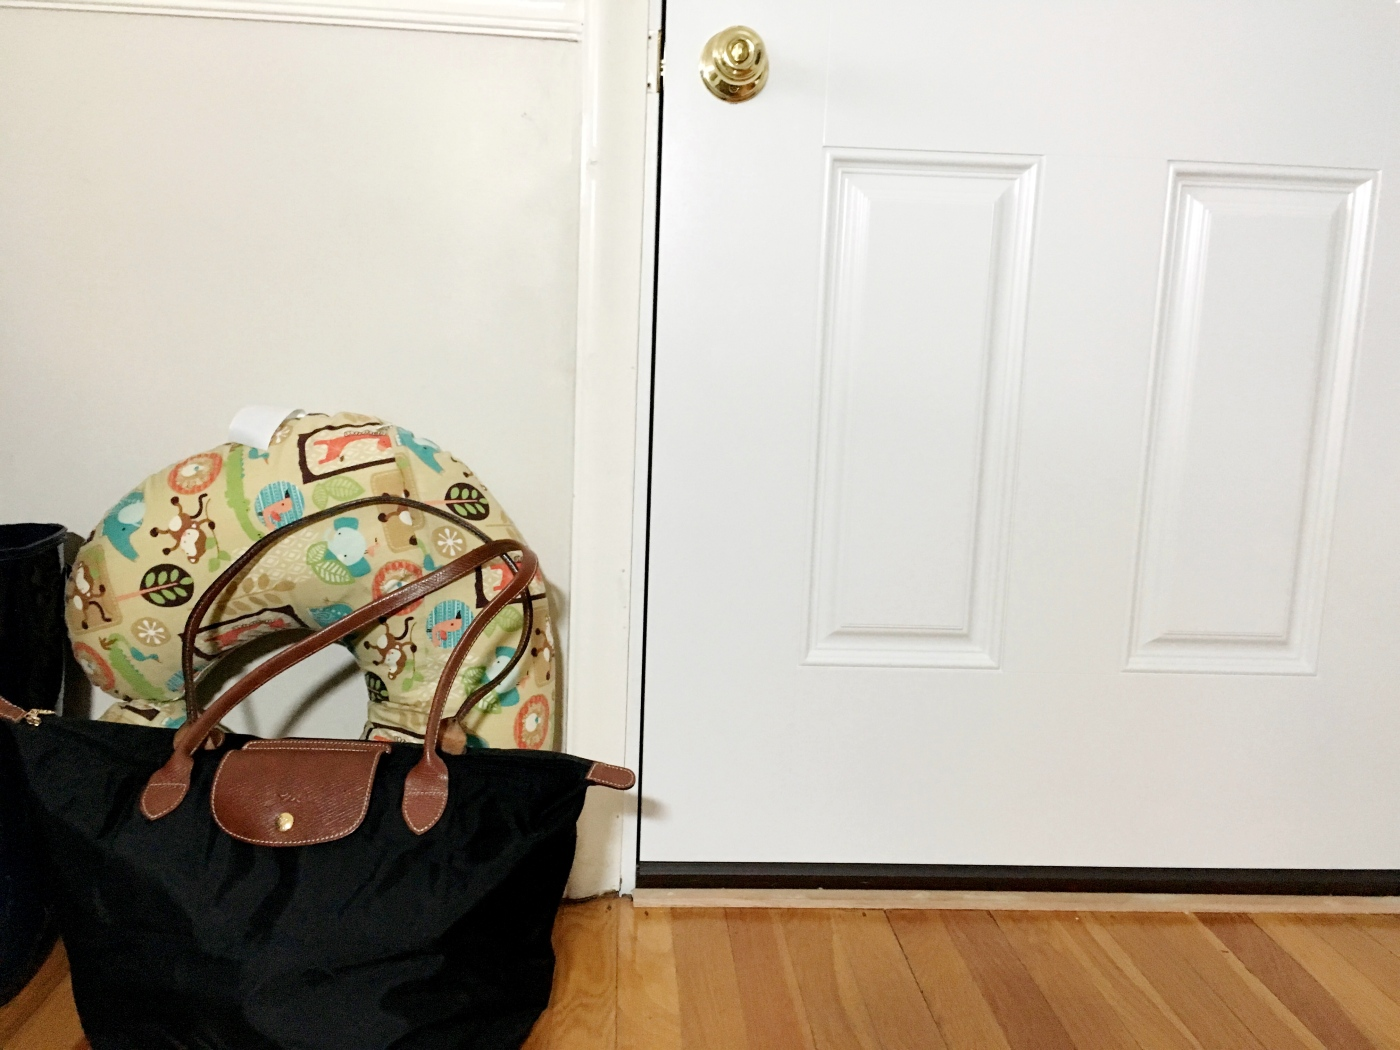 Labor and delivery bag at the door